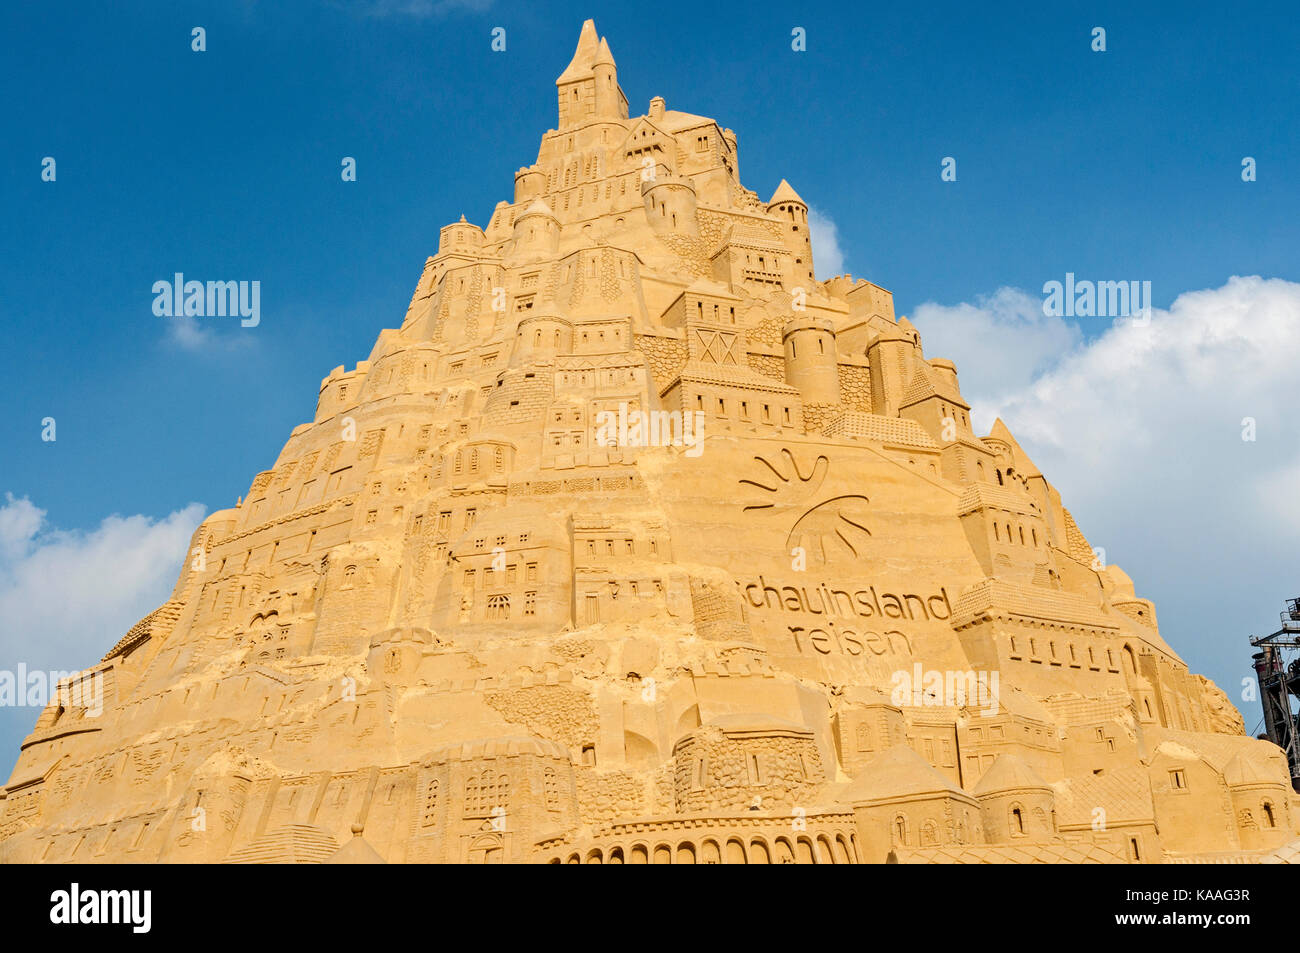 Record breaking sand castle which gained an entry in the Guiness Book of Records in Landschafts Park Duisburg Nord, - Stock Image